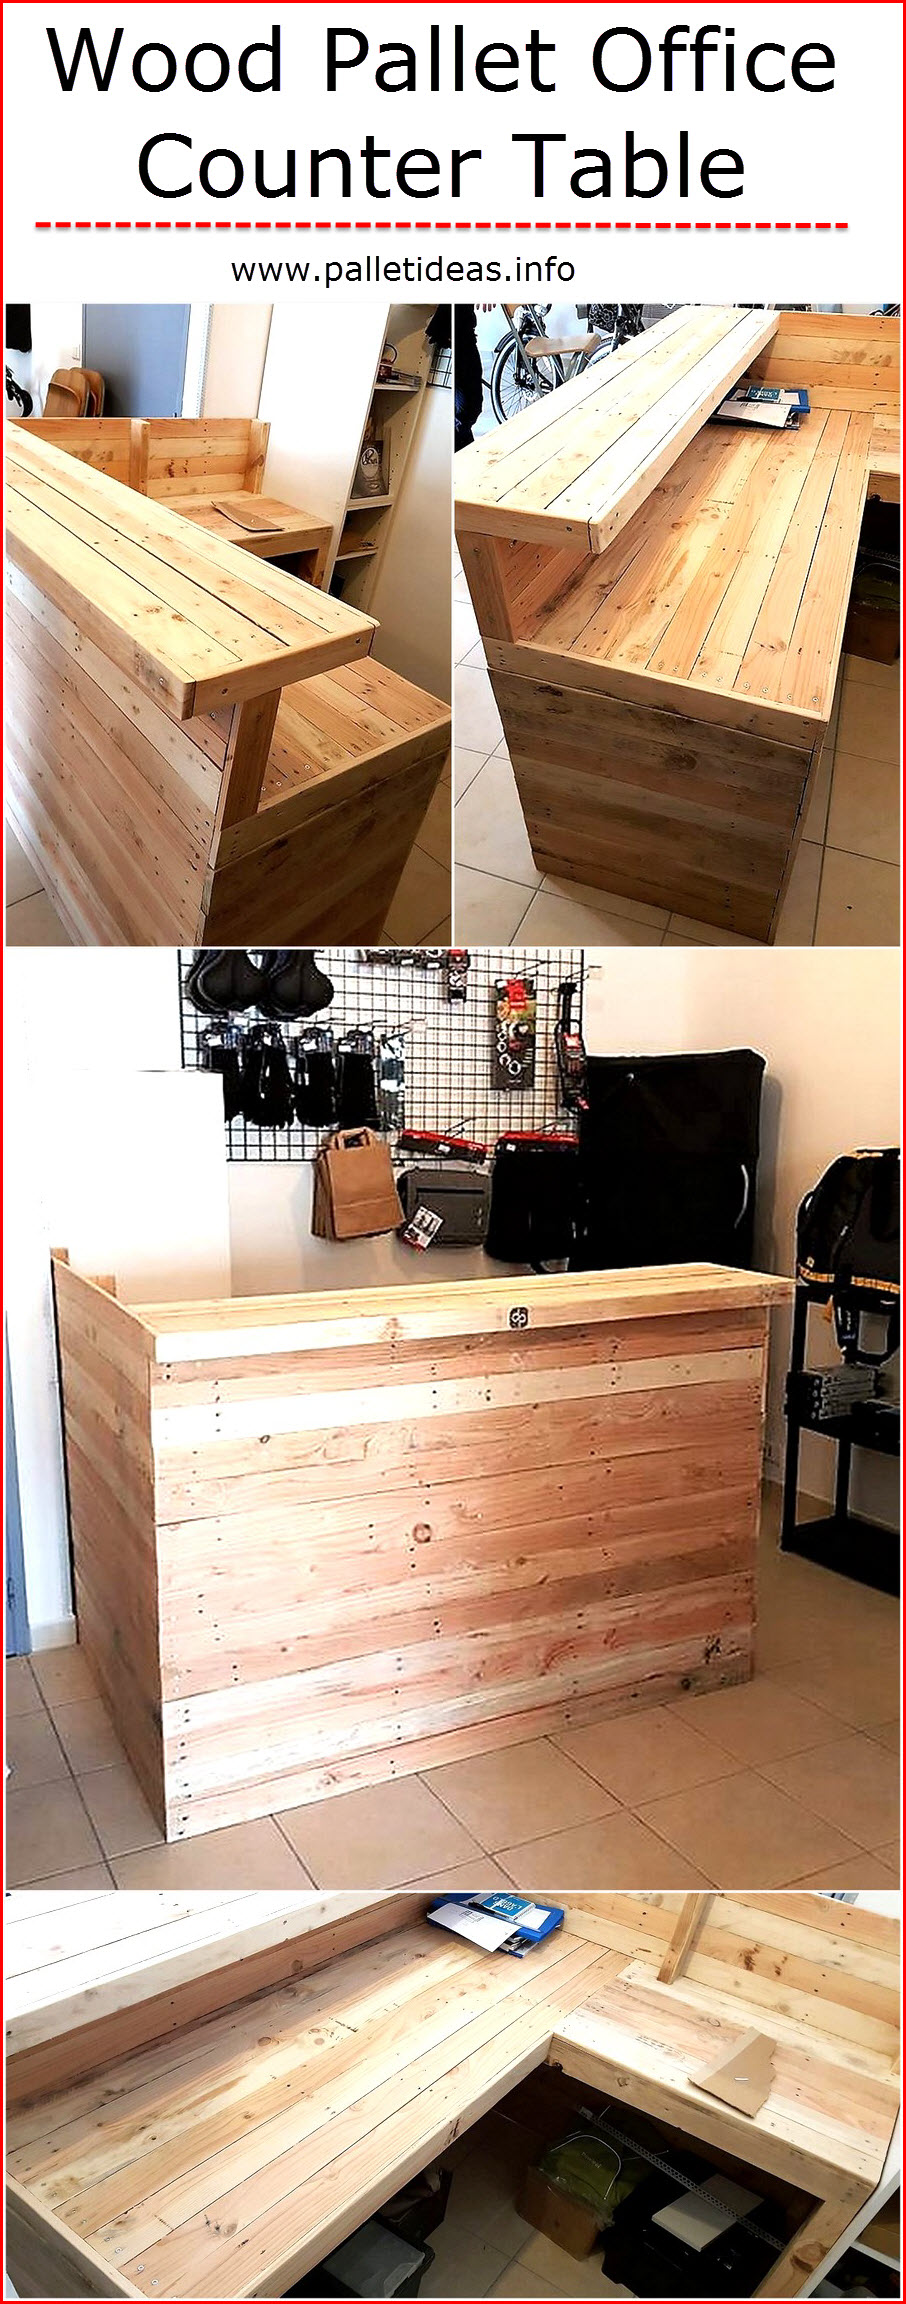 wood-pallet-office-counter-table